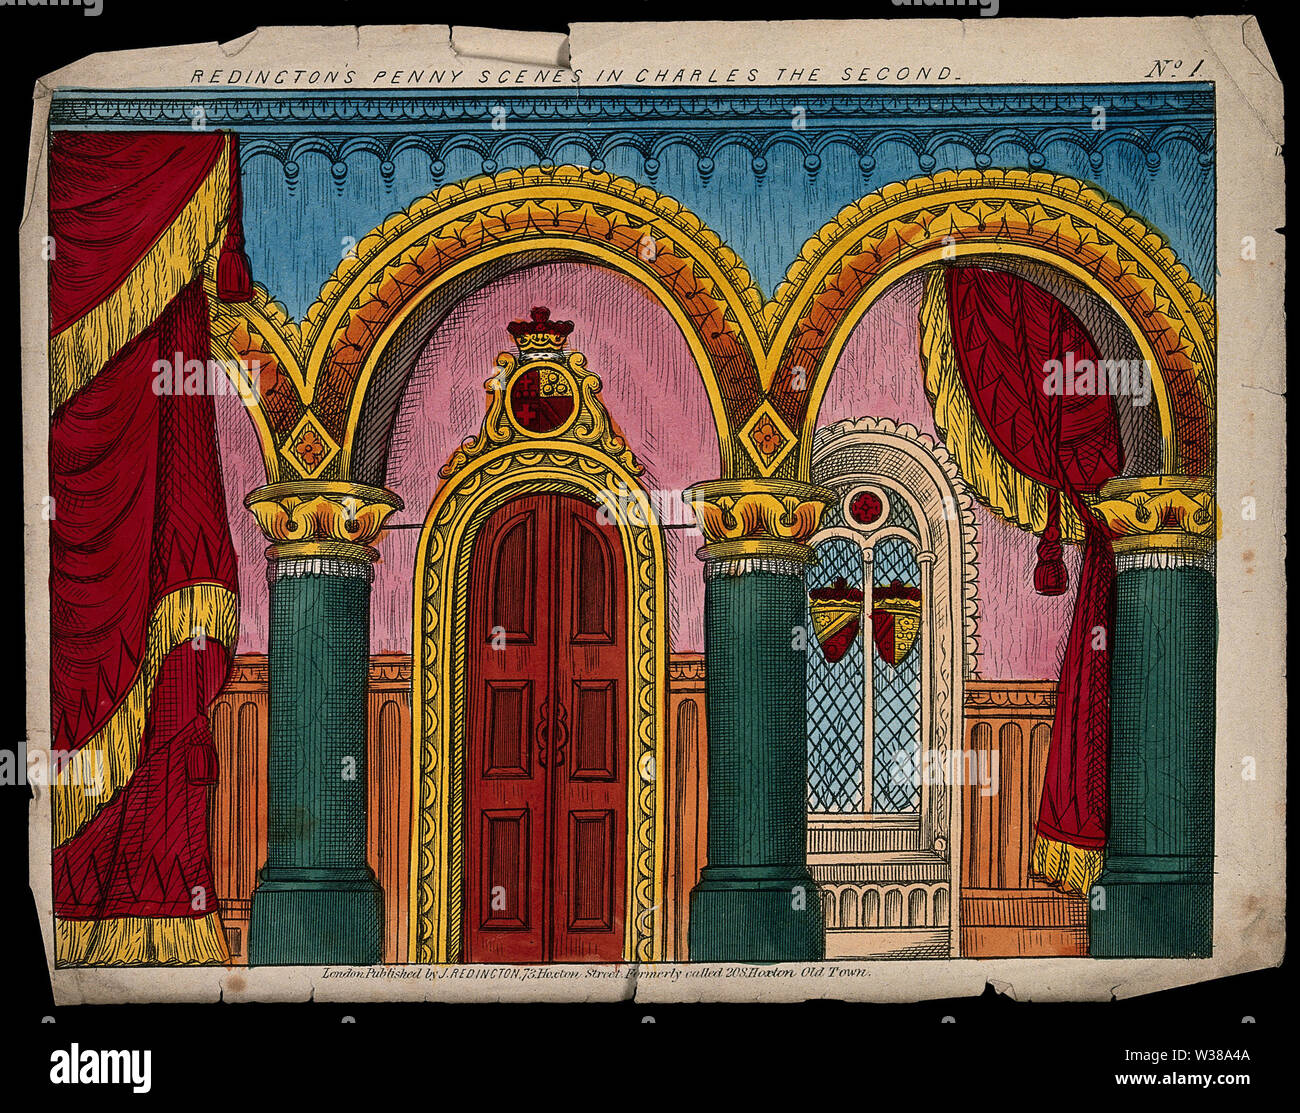 A scene to be used as a backdrop to a children's theatre production. Coloured lithograph. - Stock Image